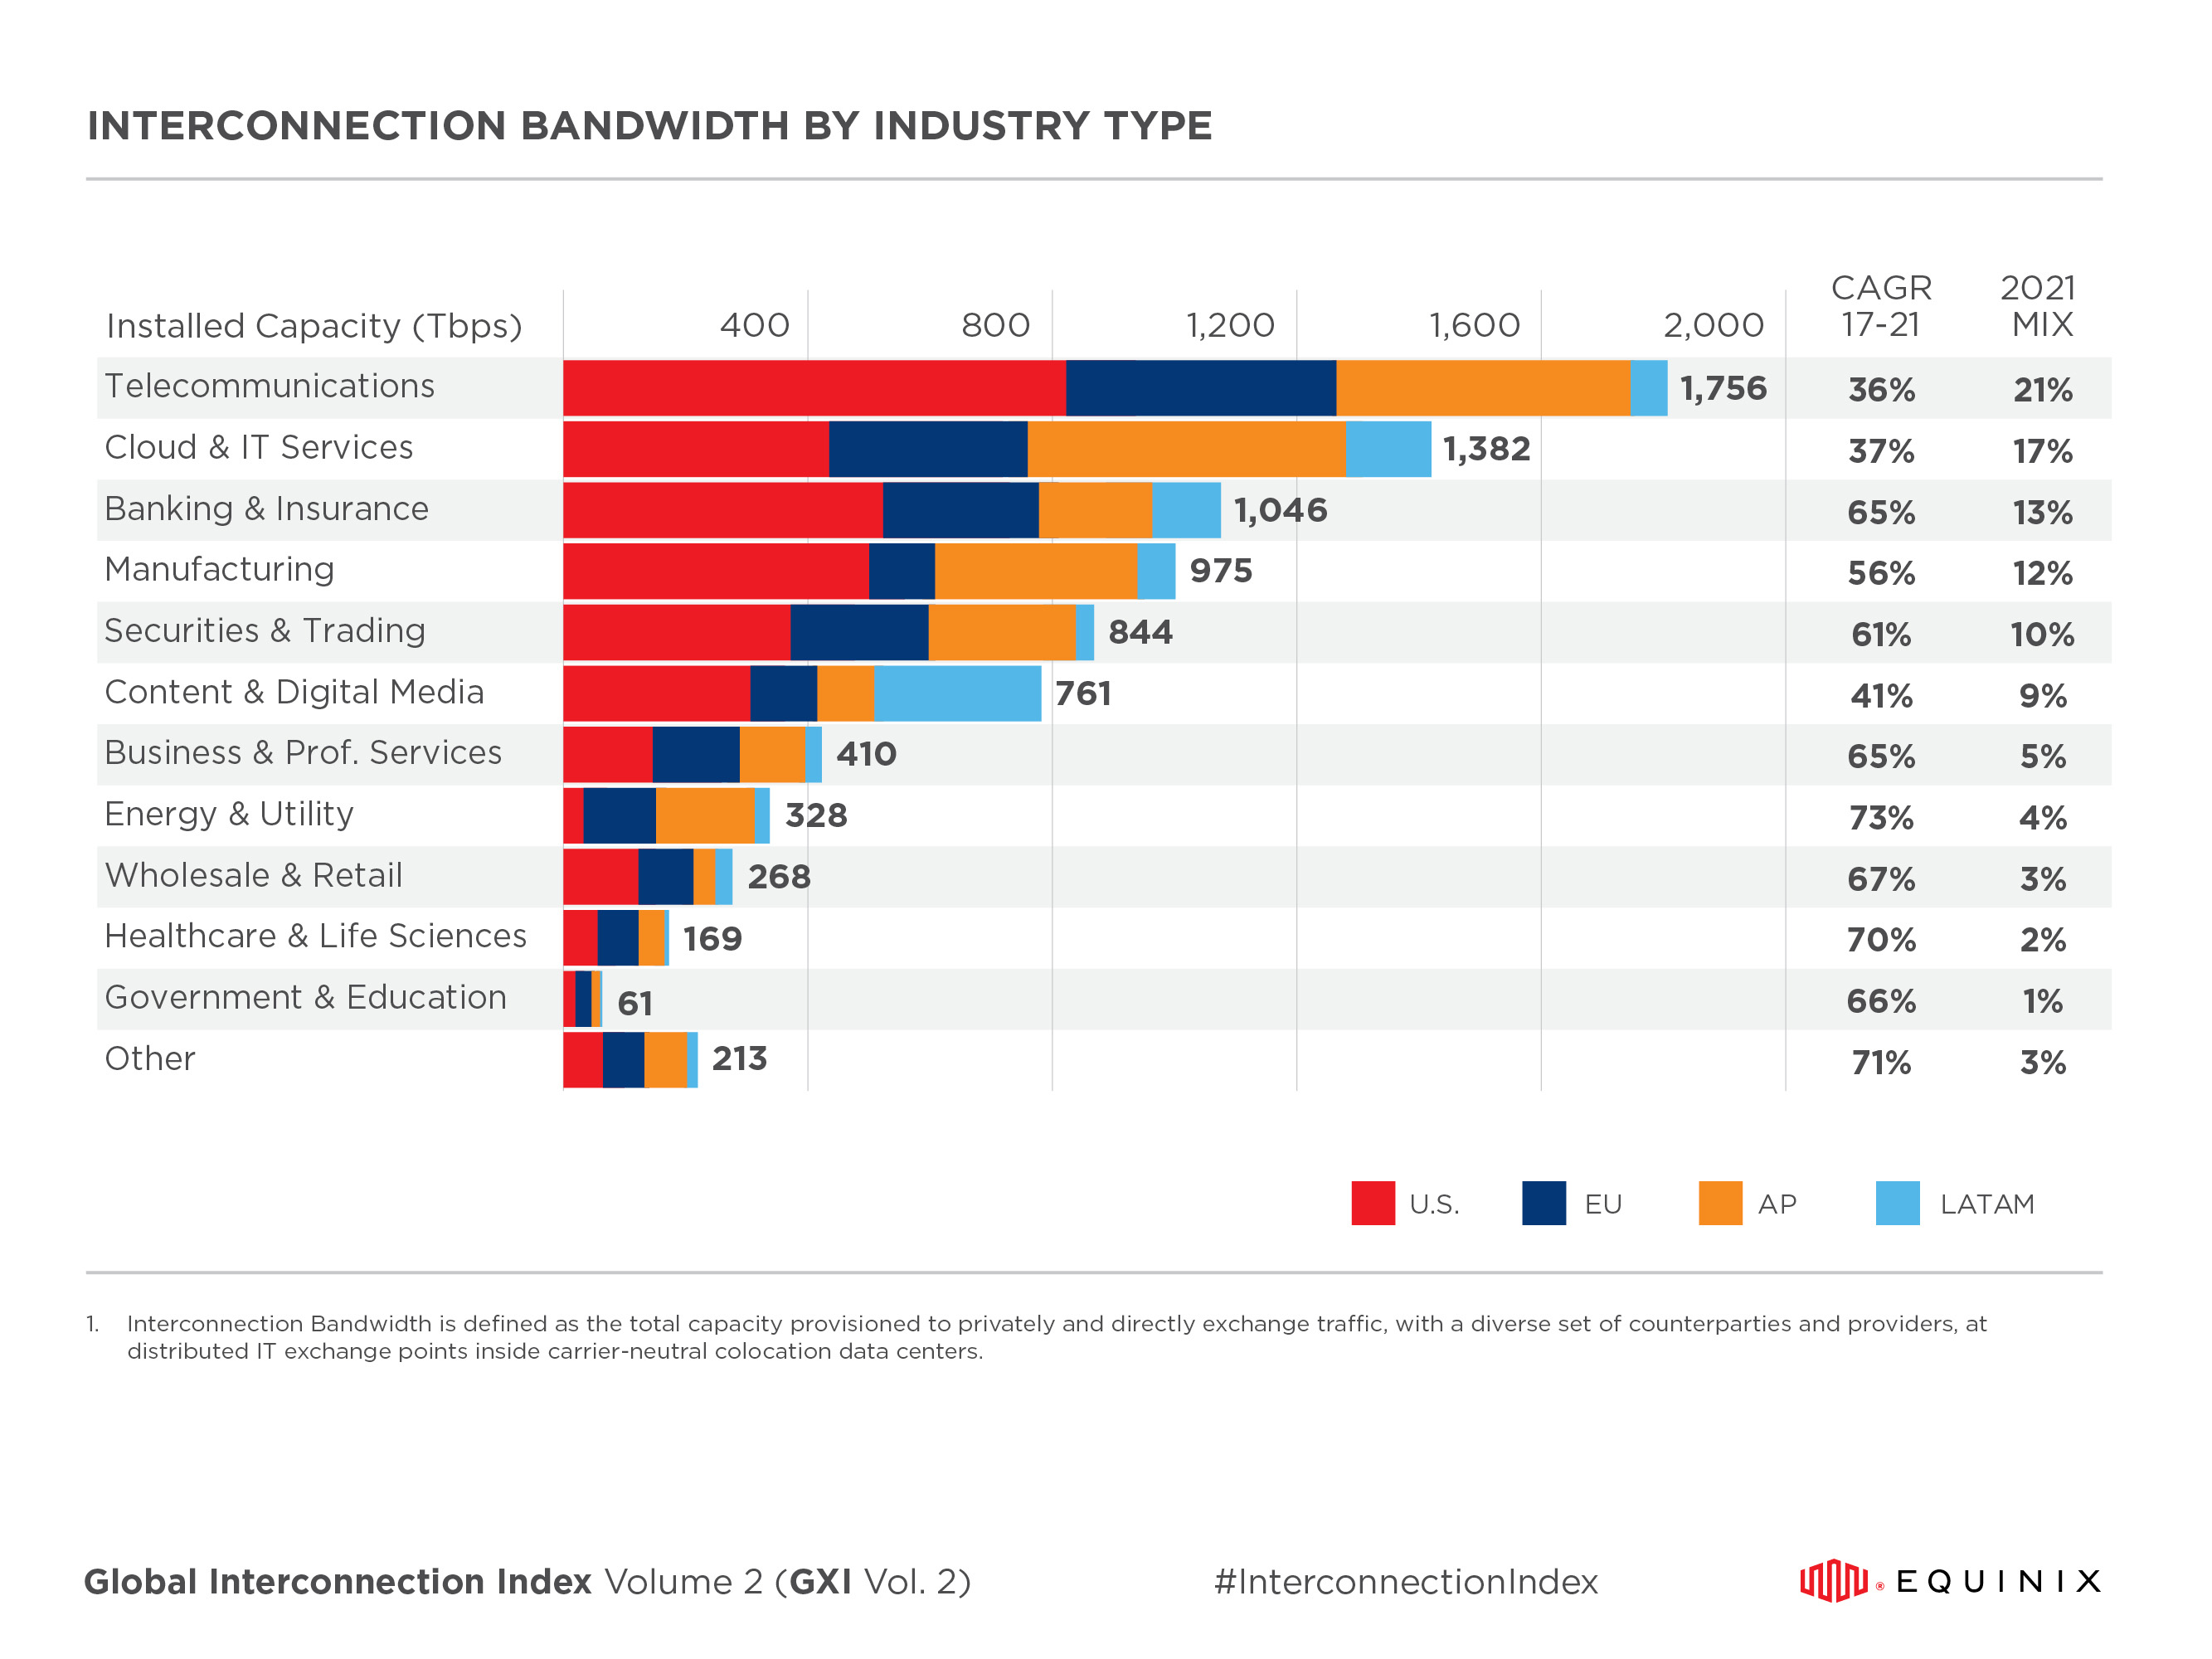 Global Interconnection Index (GXI) Bandwidth by Industry Type